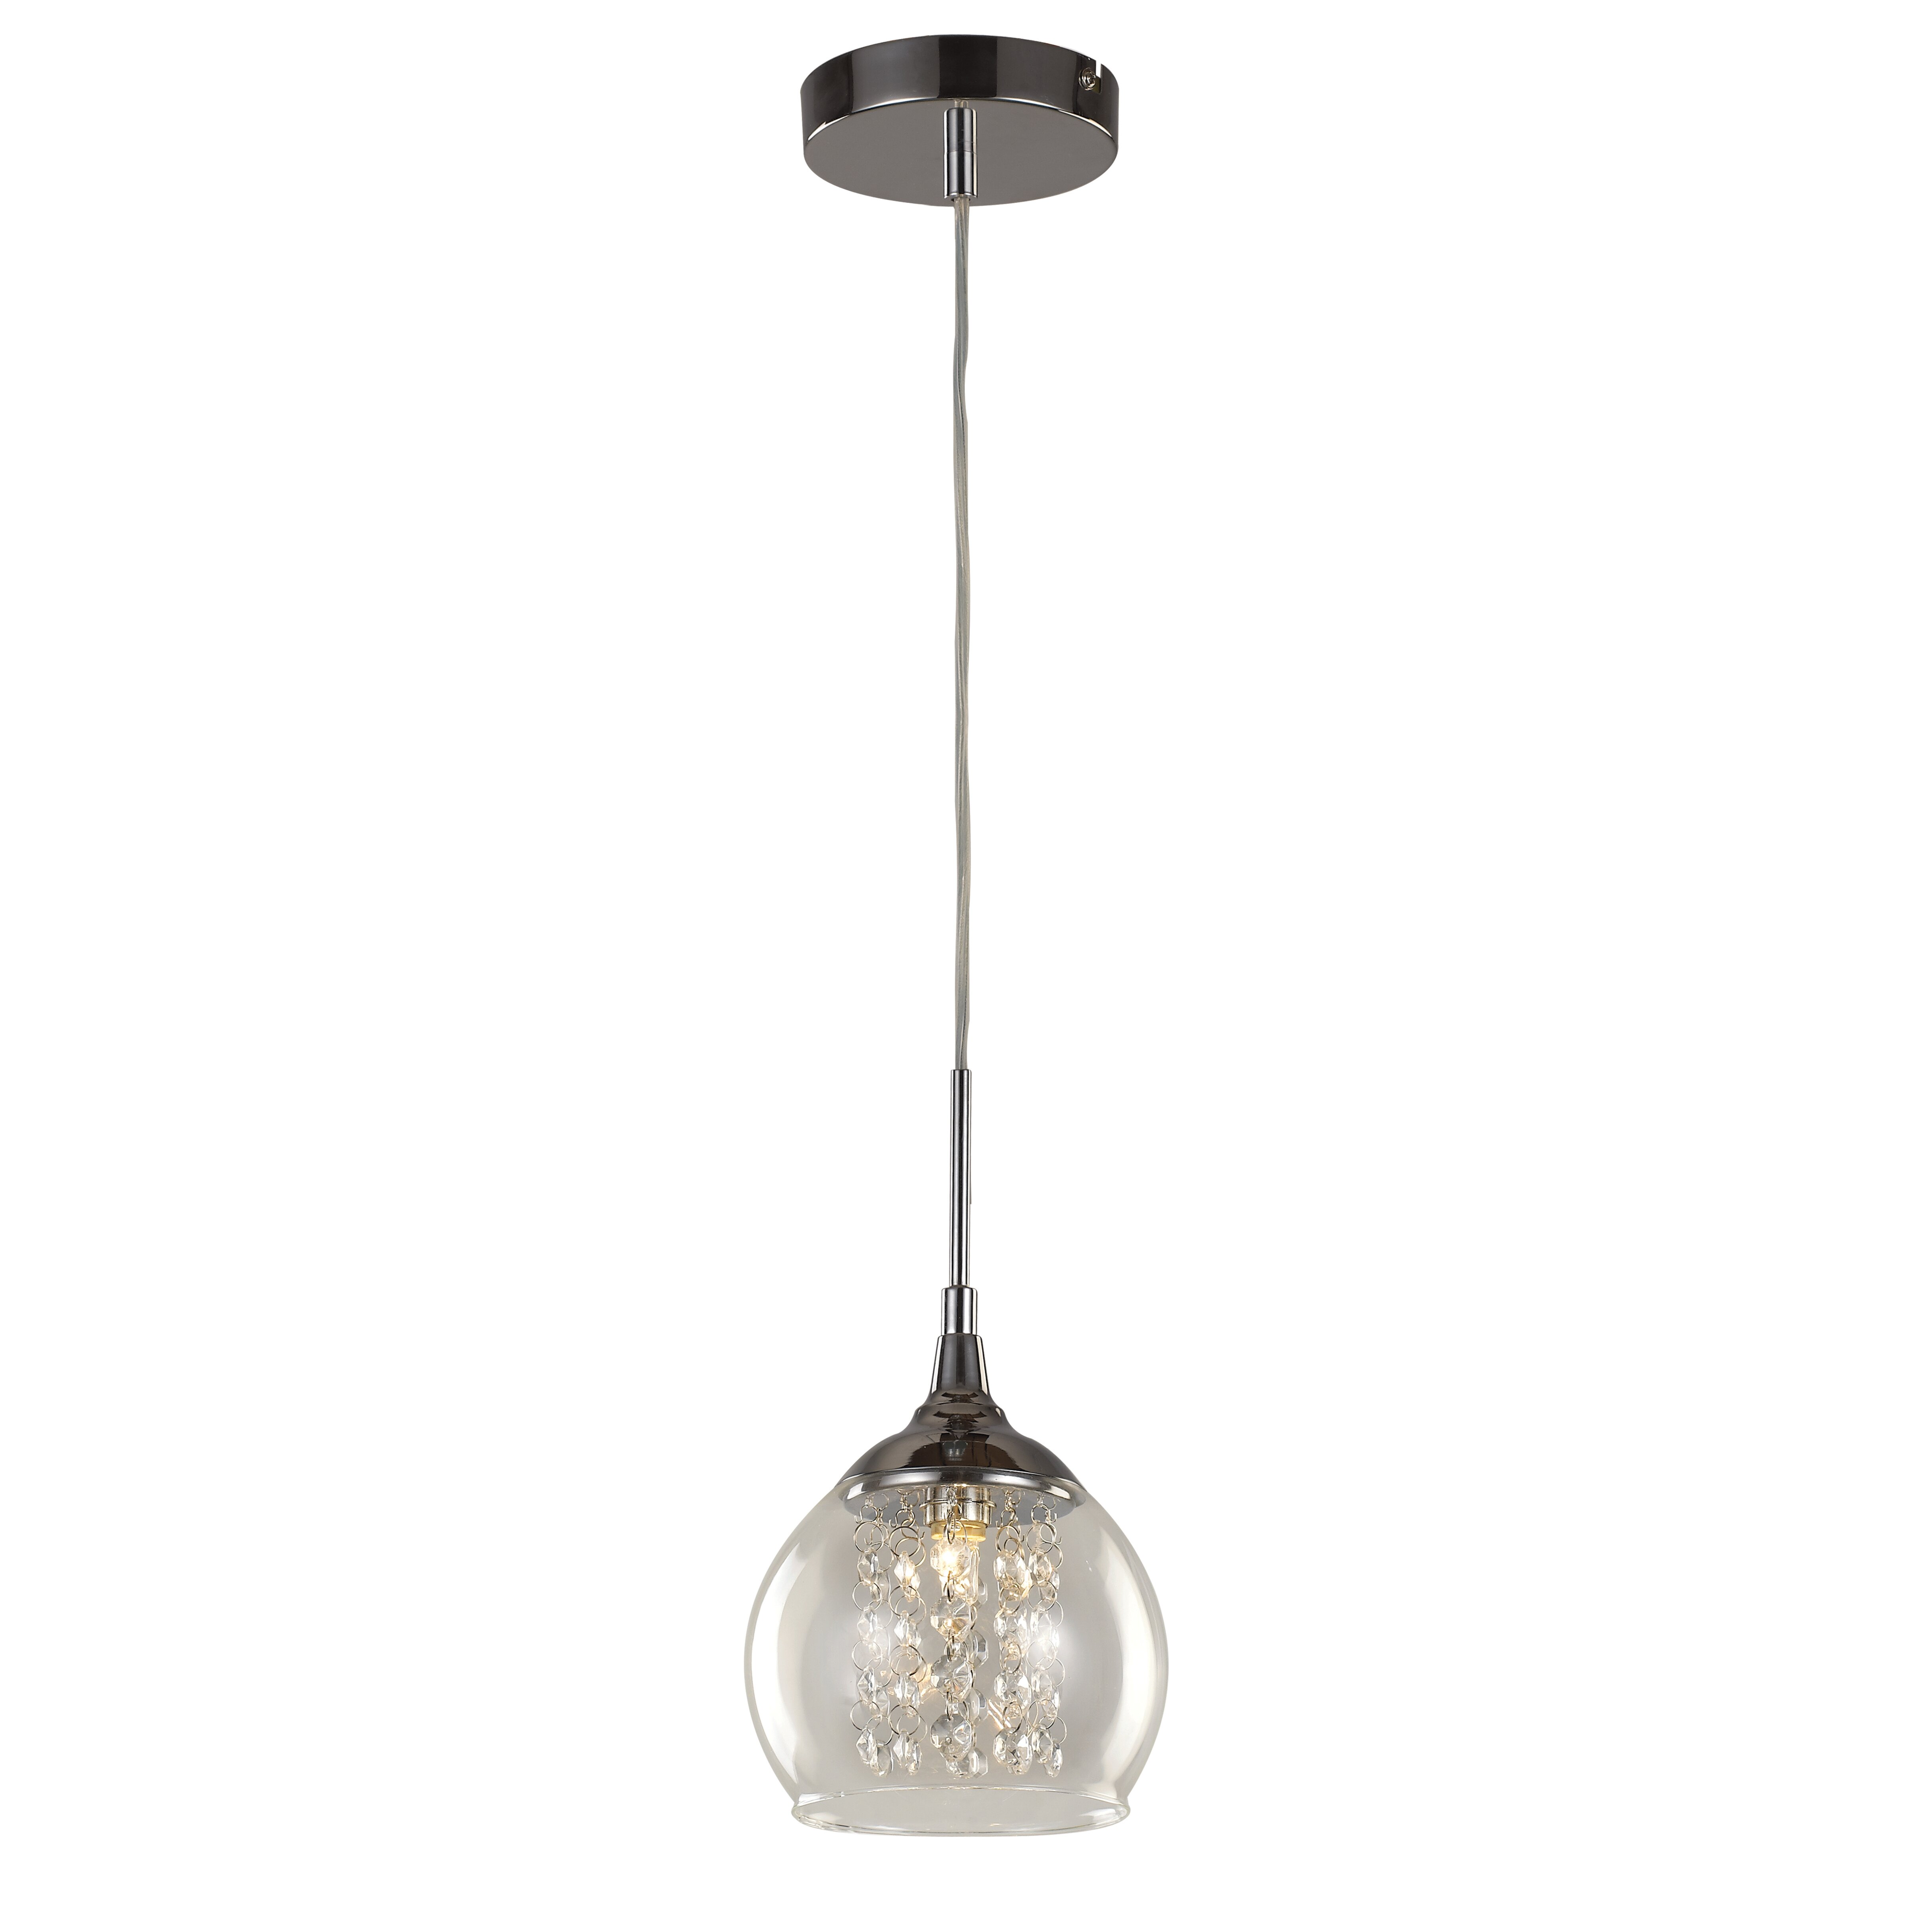 pendant lighting shades only. pendant lighting shades only i t